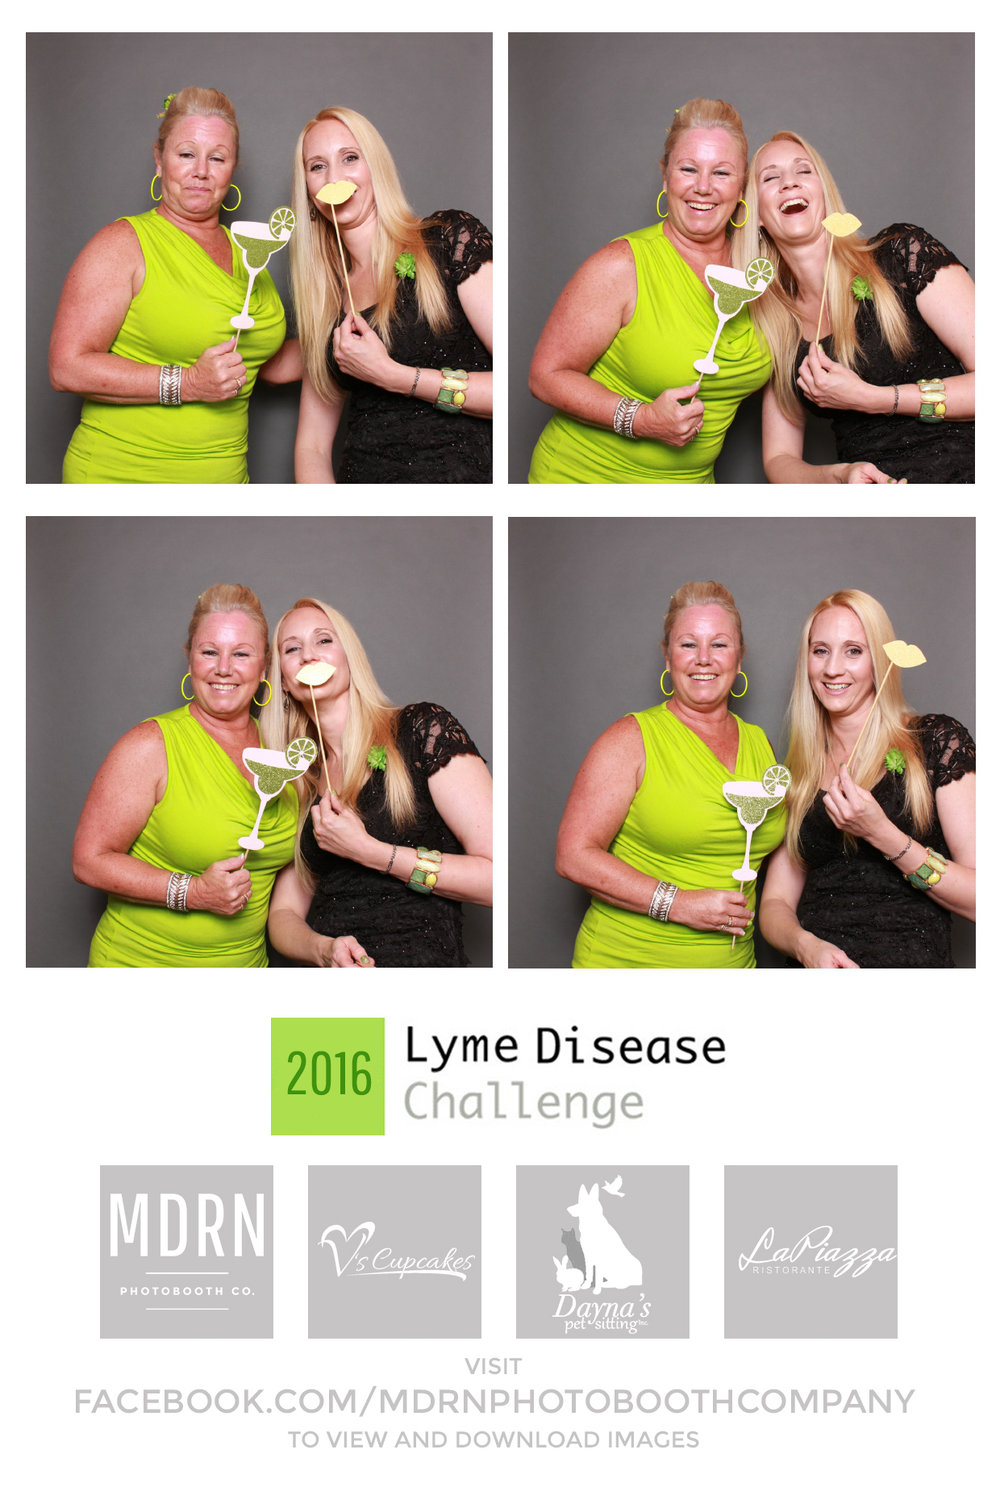 MDRN_Photobooth_company_lyme_challenge_2016-32702.jpg